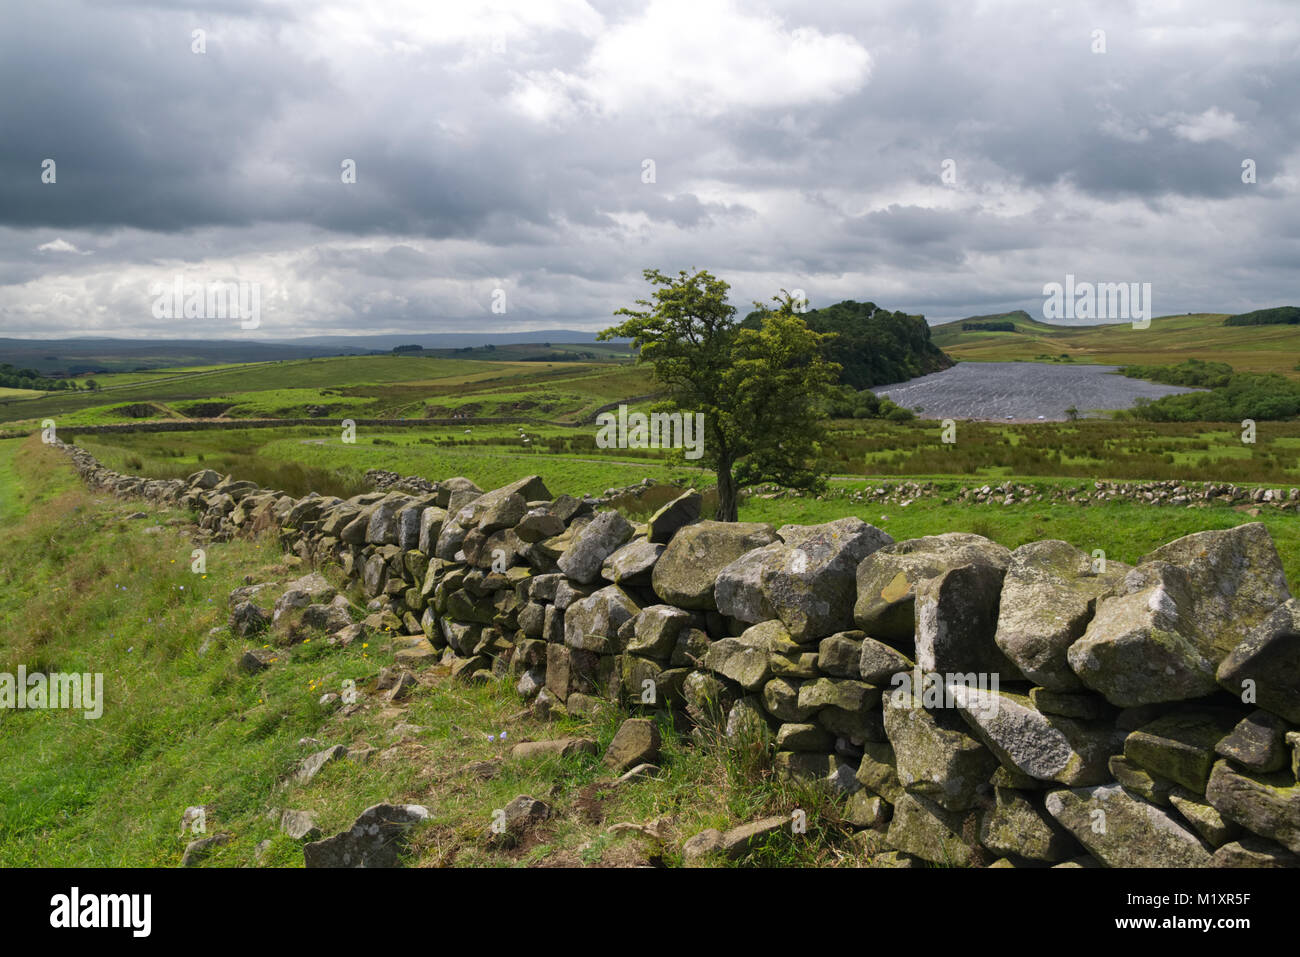 View over Hadrian's wall. Countryside landscape with trees, lake and dramatic sky with ancient stone wall as leading - Stock Image